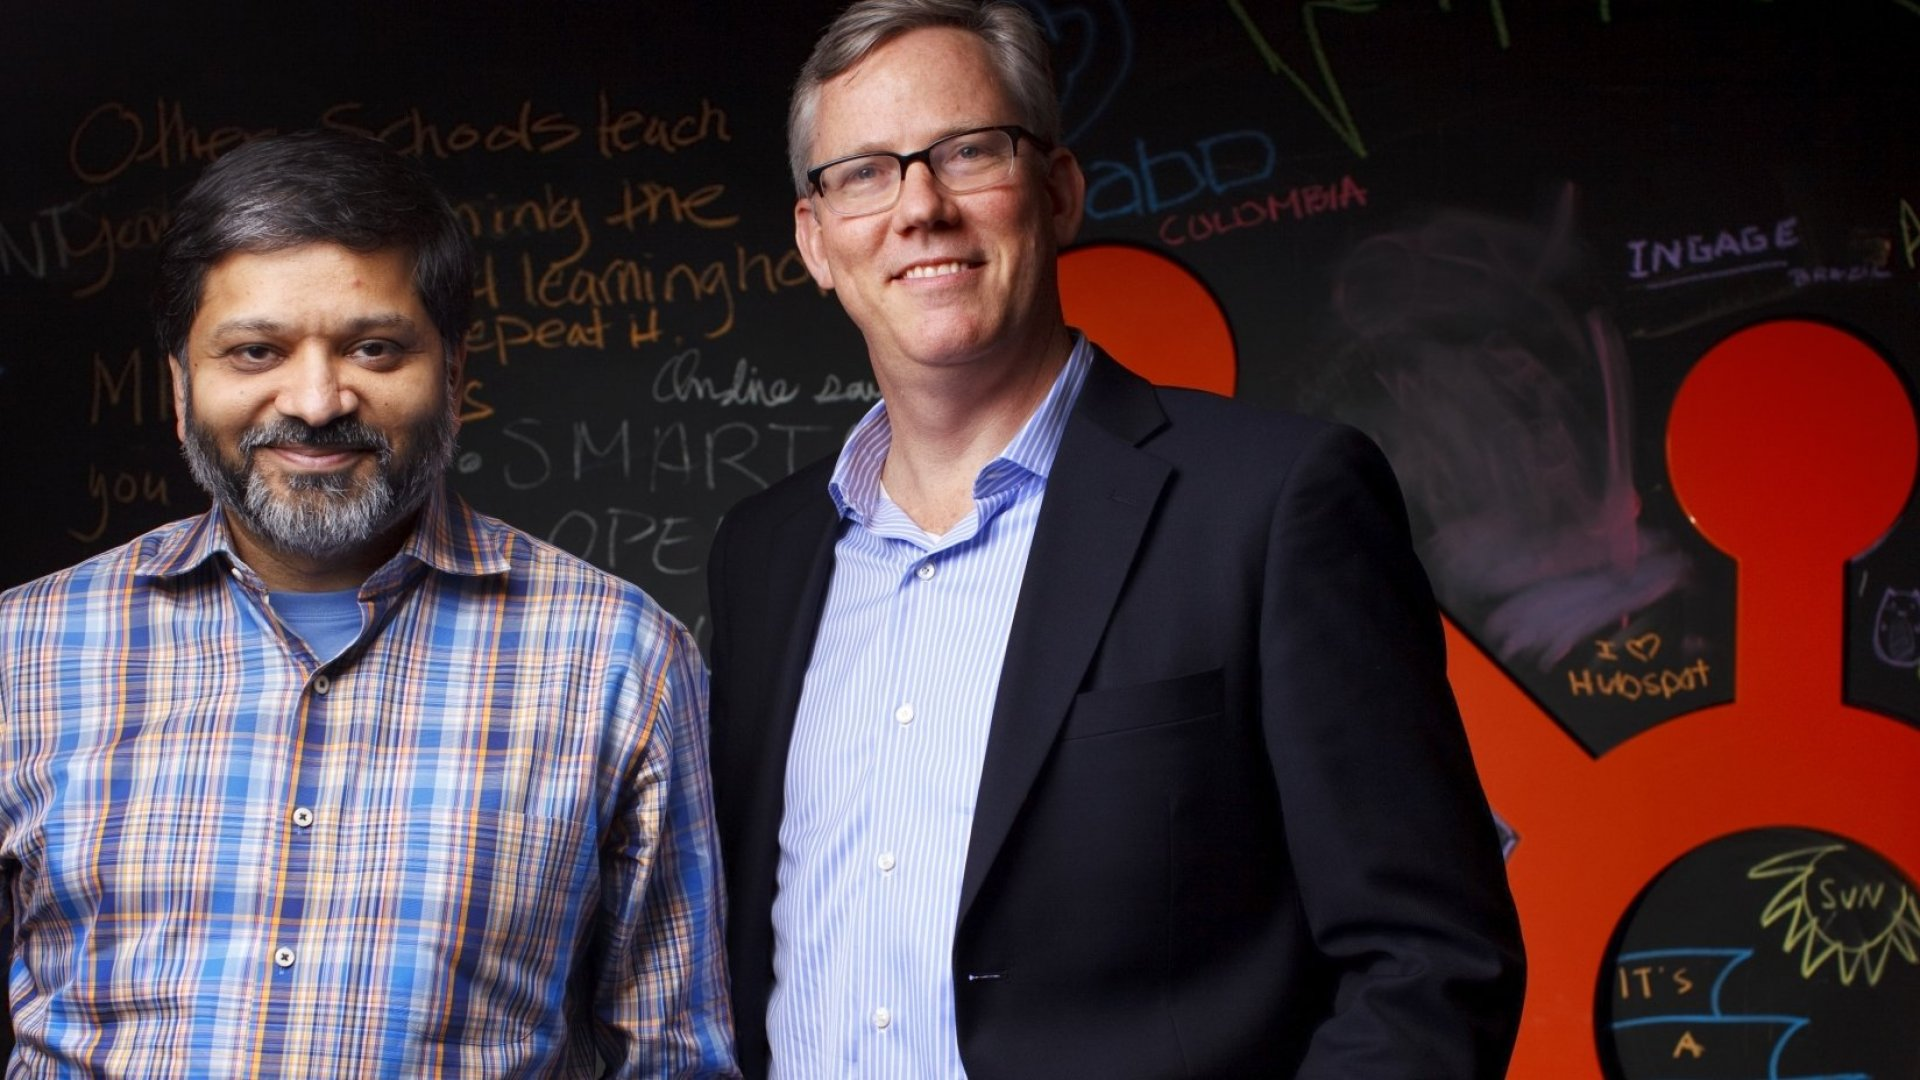 23 Amazing Facts About HubSpot's Dharmesh Shah